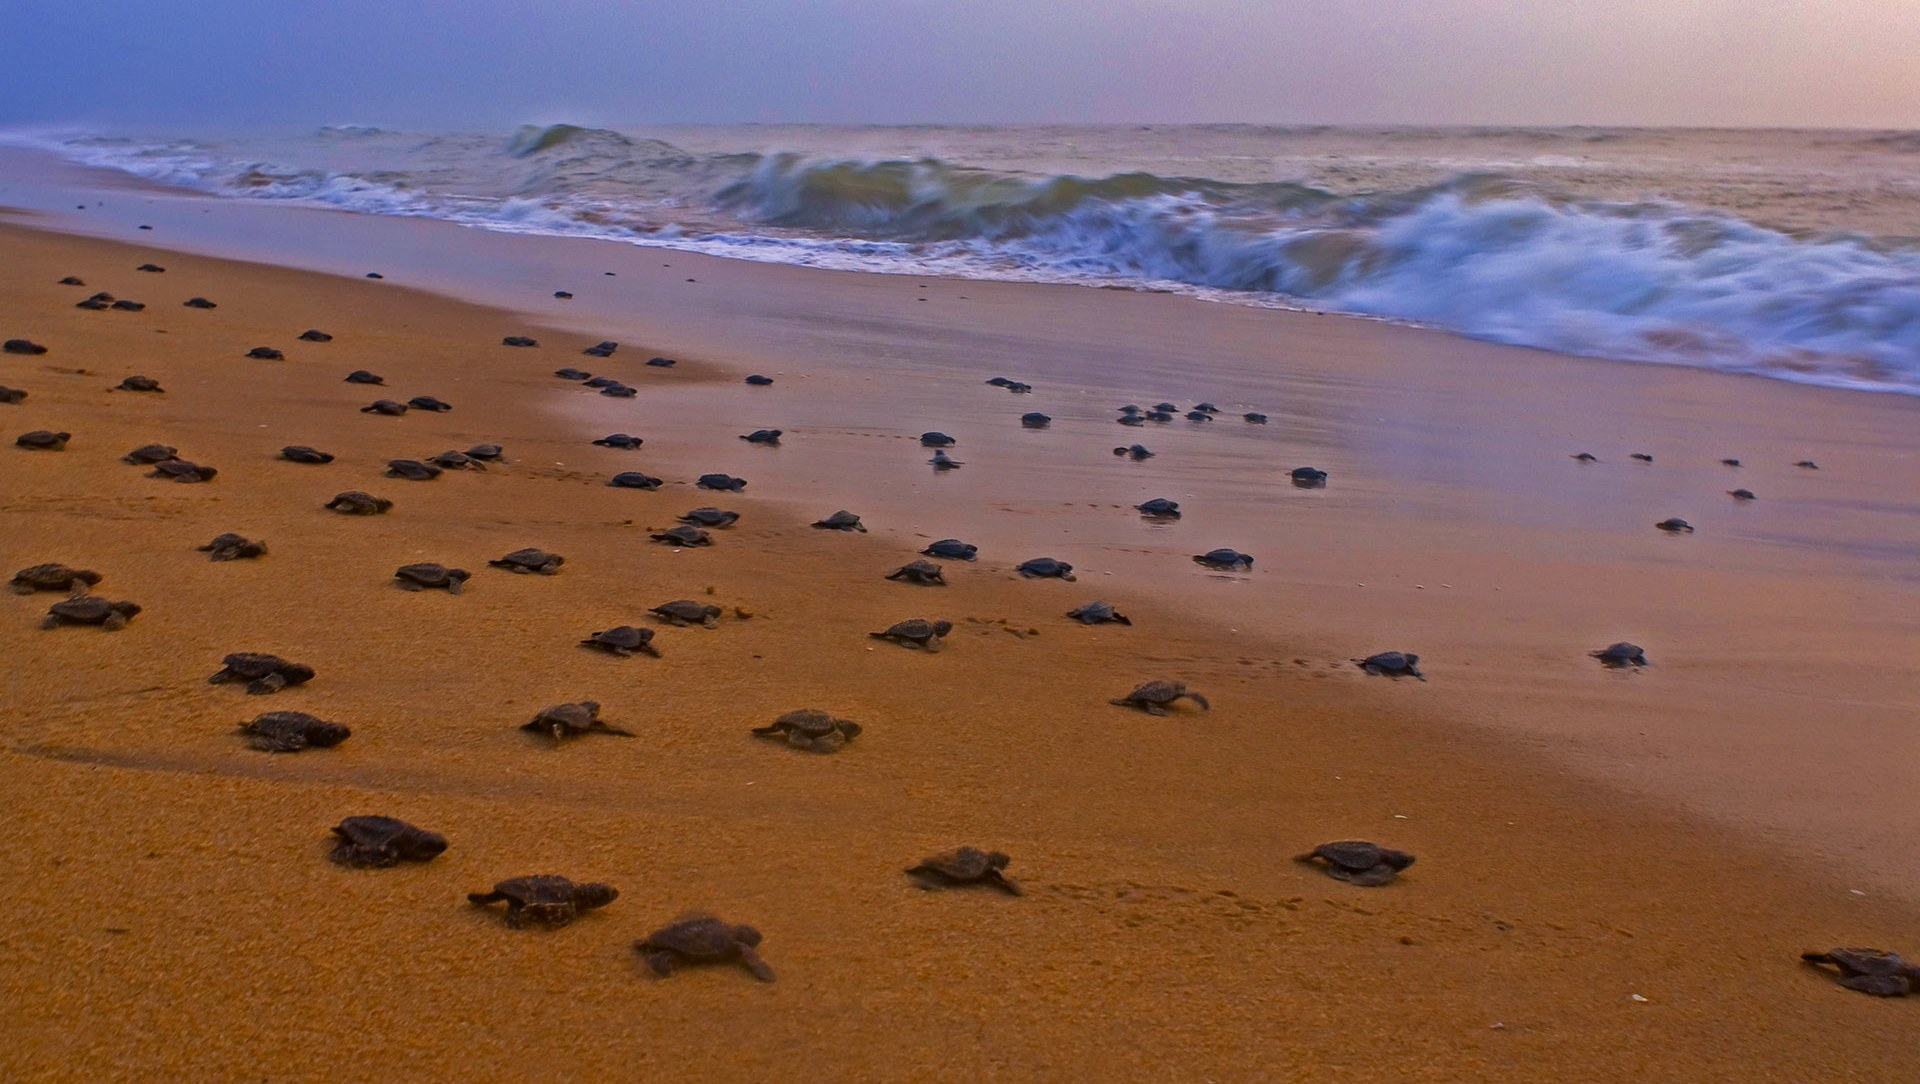 Arribada: The Mystery of the Olive Ridley Turtle Migration